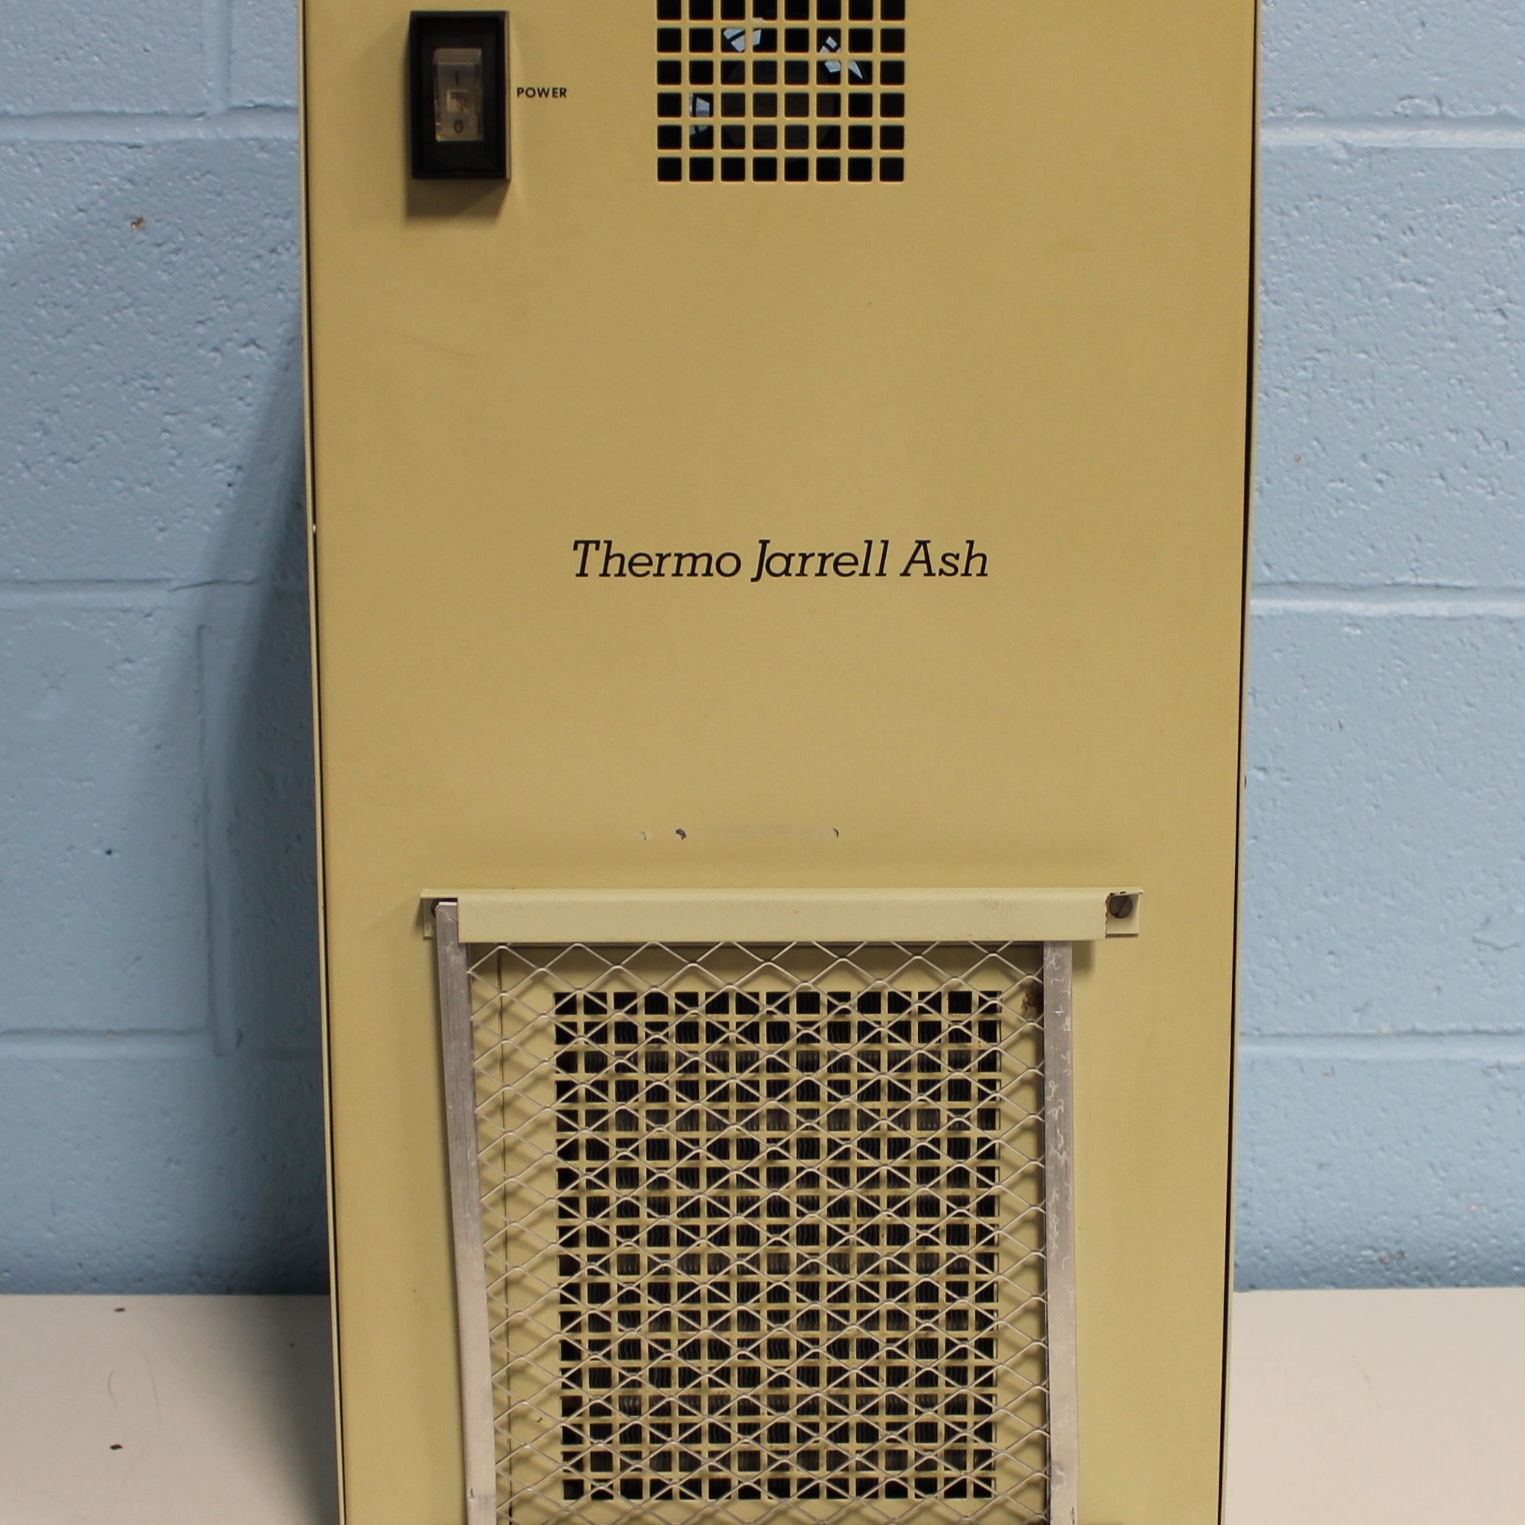 Neslab Thermo Jarrell Ash Water Cooler Image